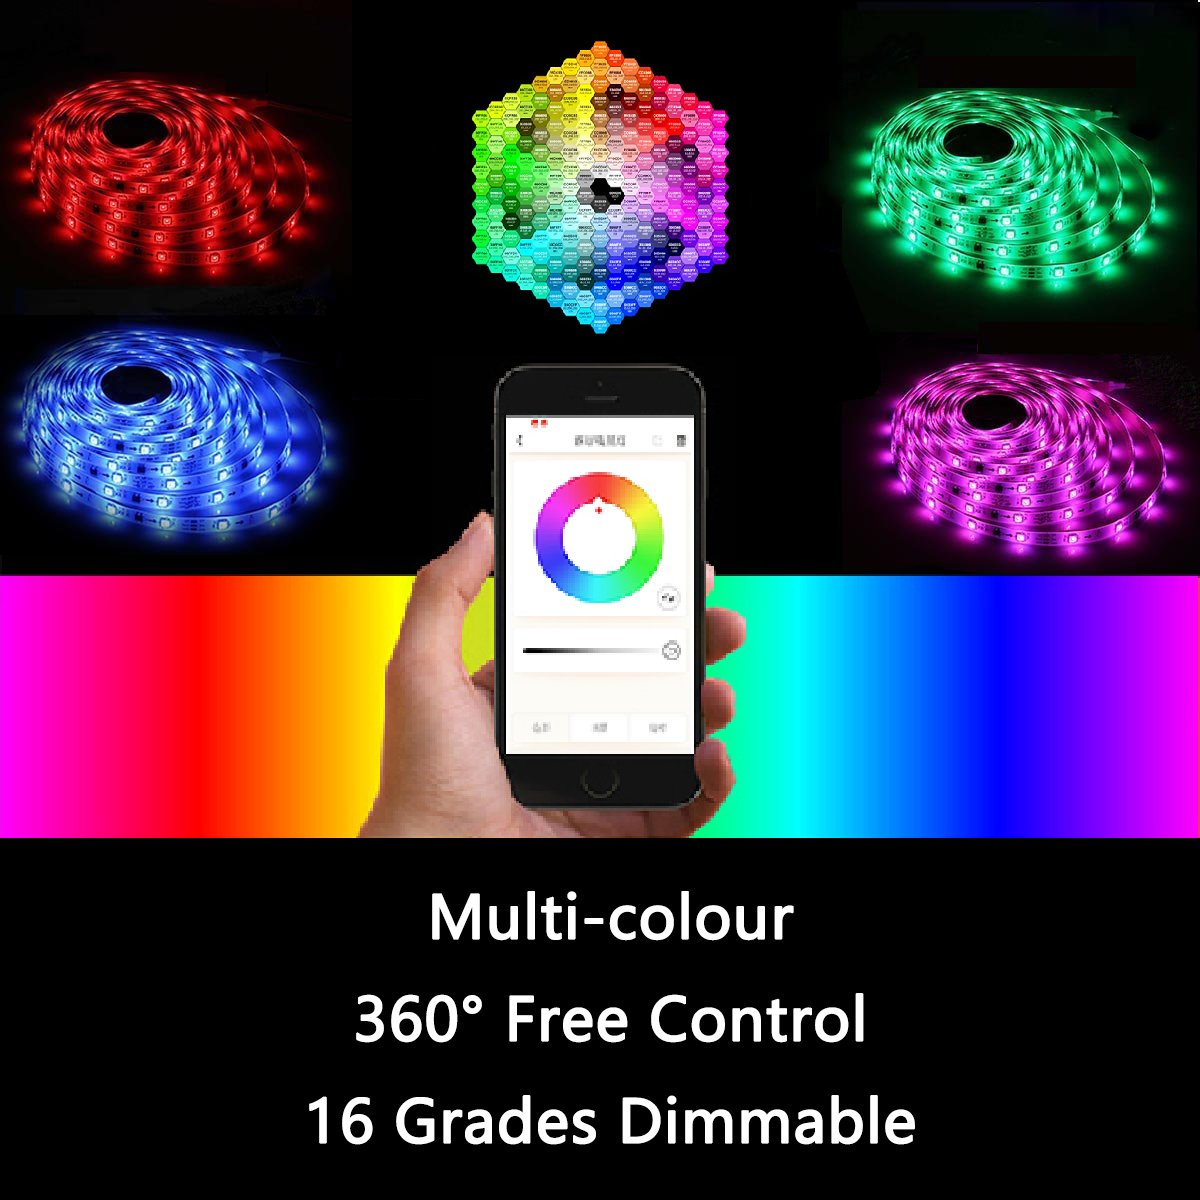 Led strip lights 16.4ft/5mNon-Waterproof LED Lights Kit5050 RGB Rope Lights With Bluetooth Smartphone APP Controller & 12V 3A Power Supply for ios and Android System by TOPMAX (Image #2)